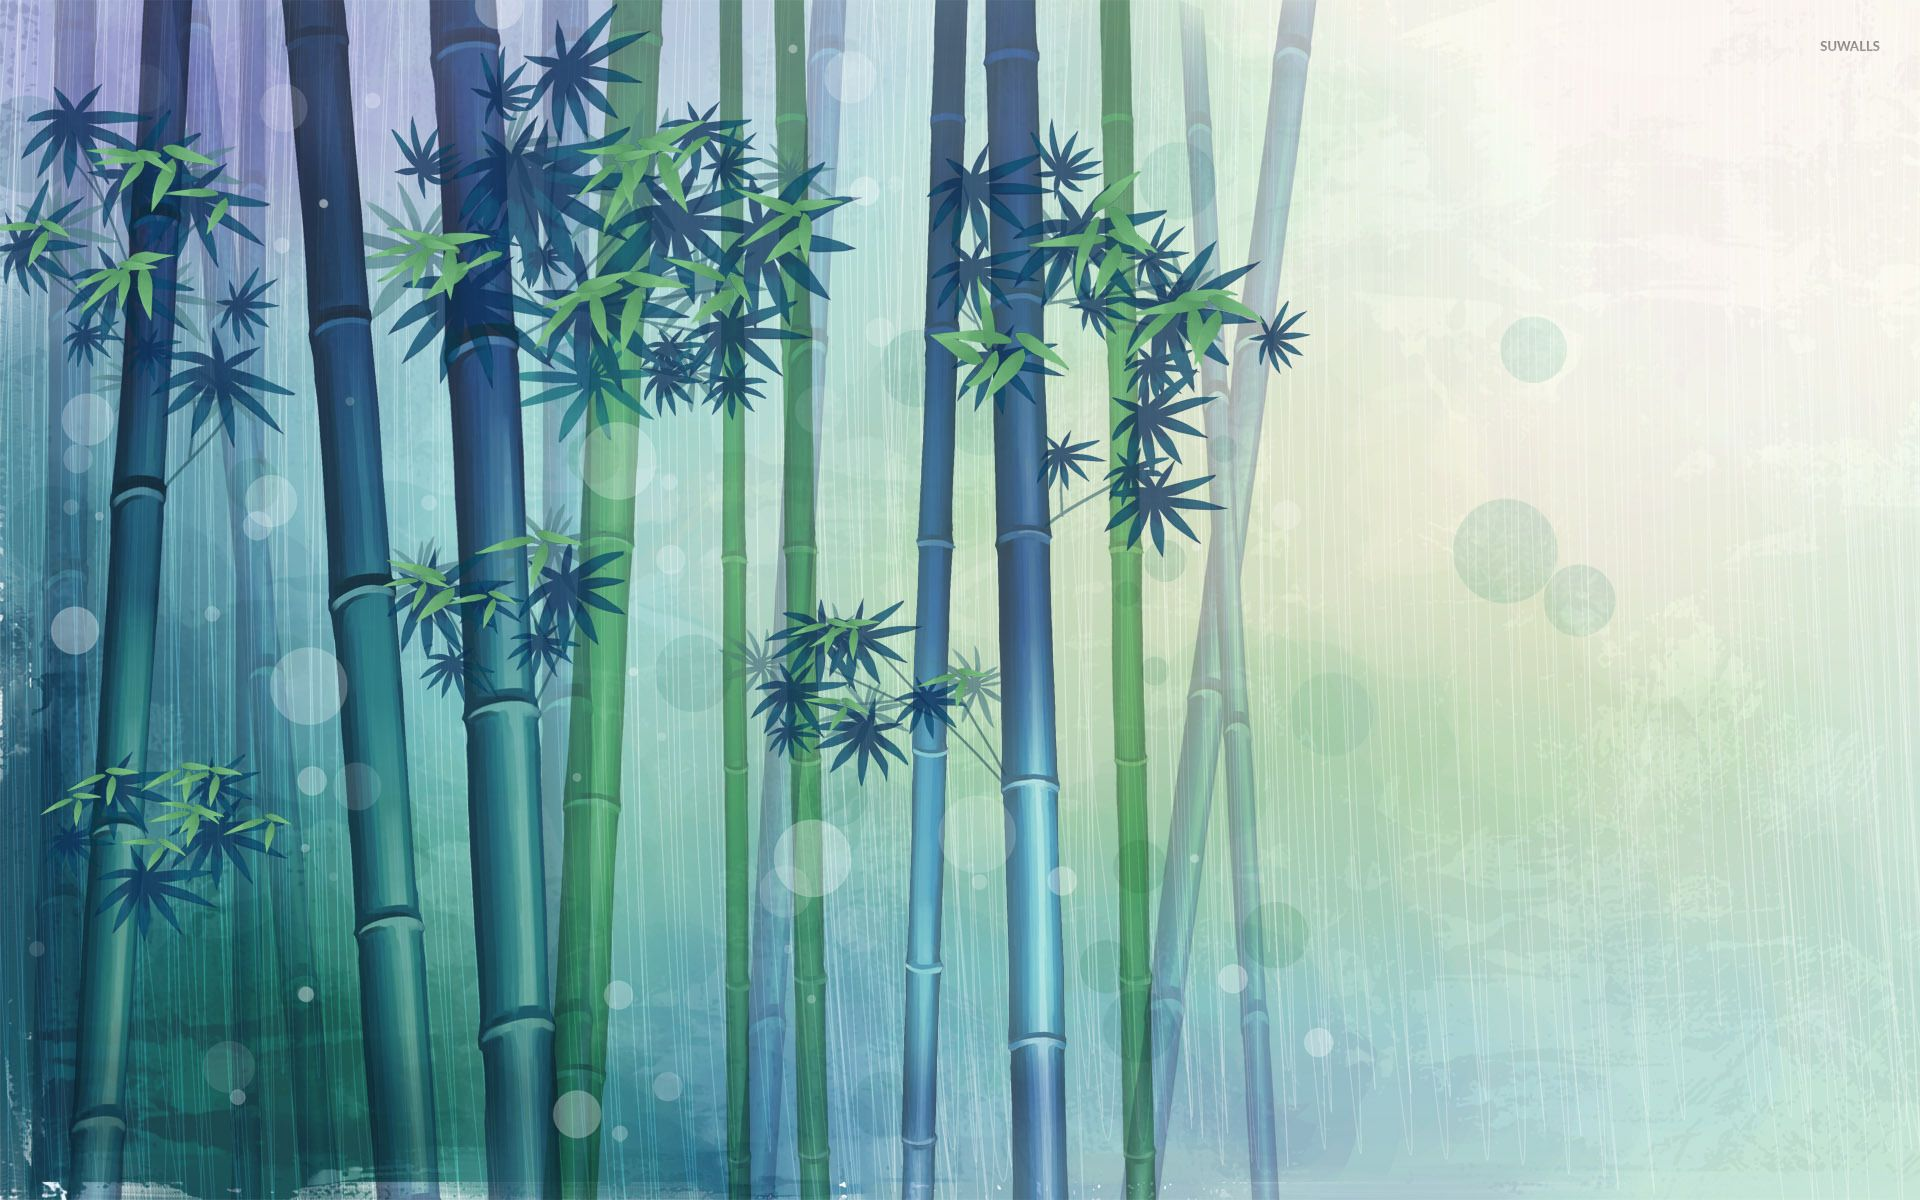 bamboo trees images